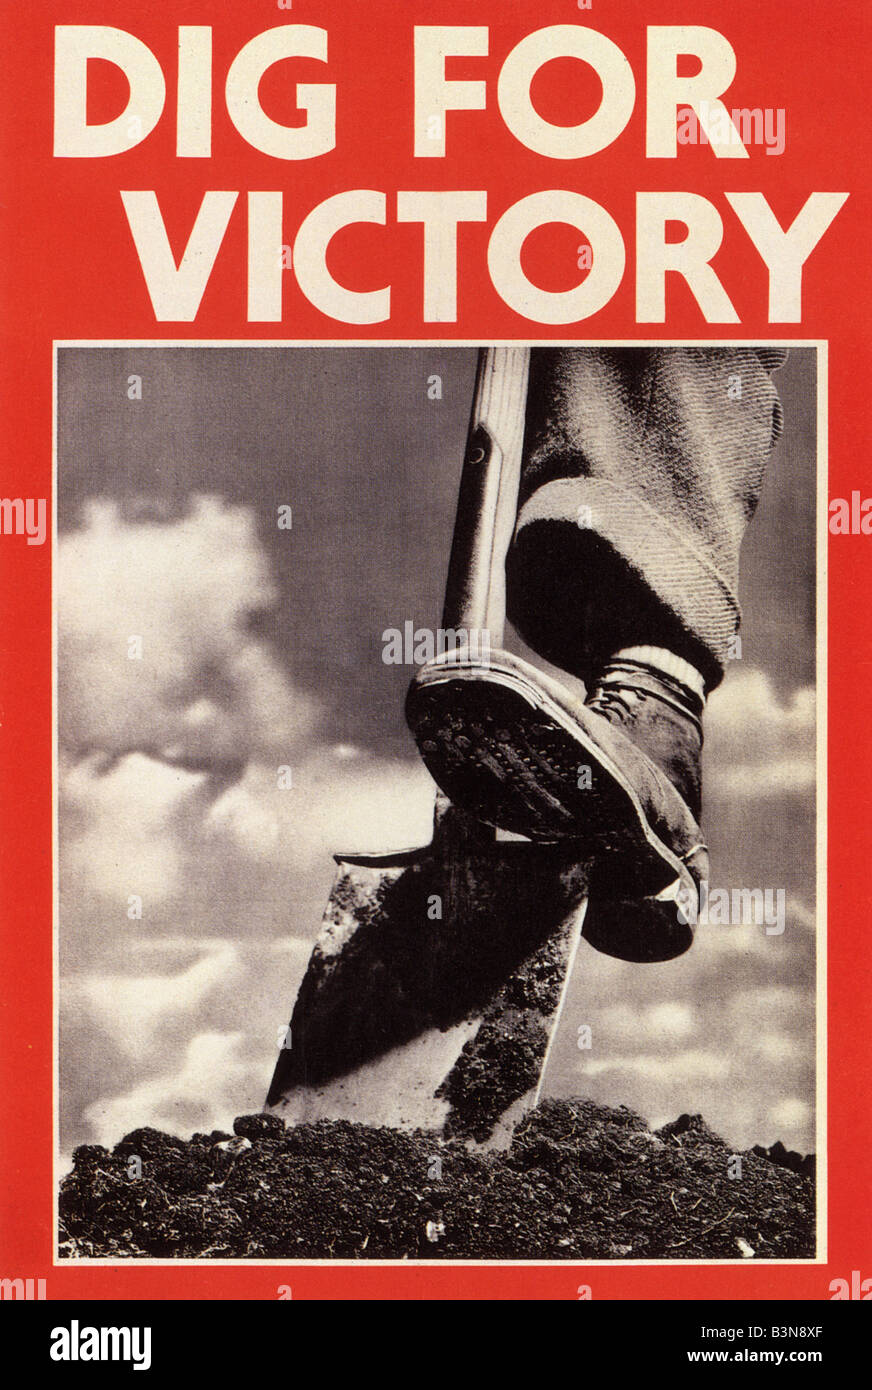 DIG FOR VICTORY WW2 UK poster Photo Stock